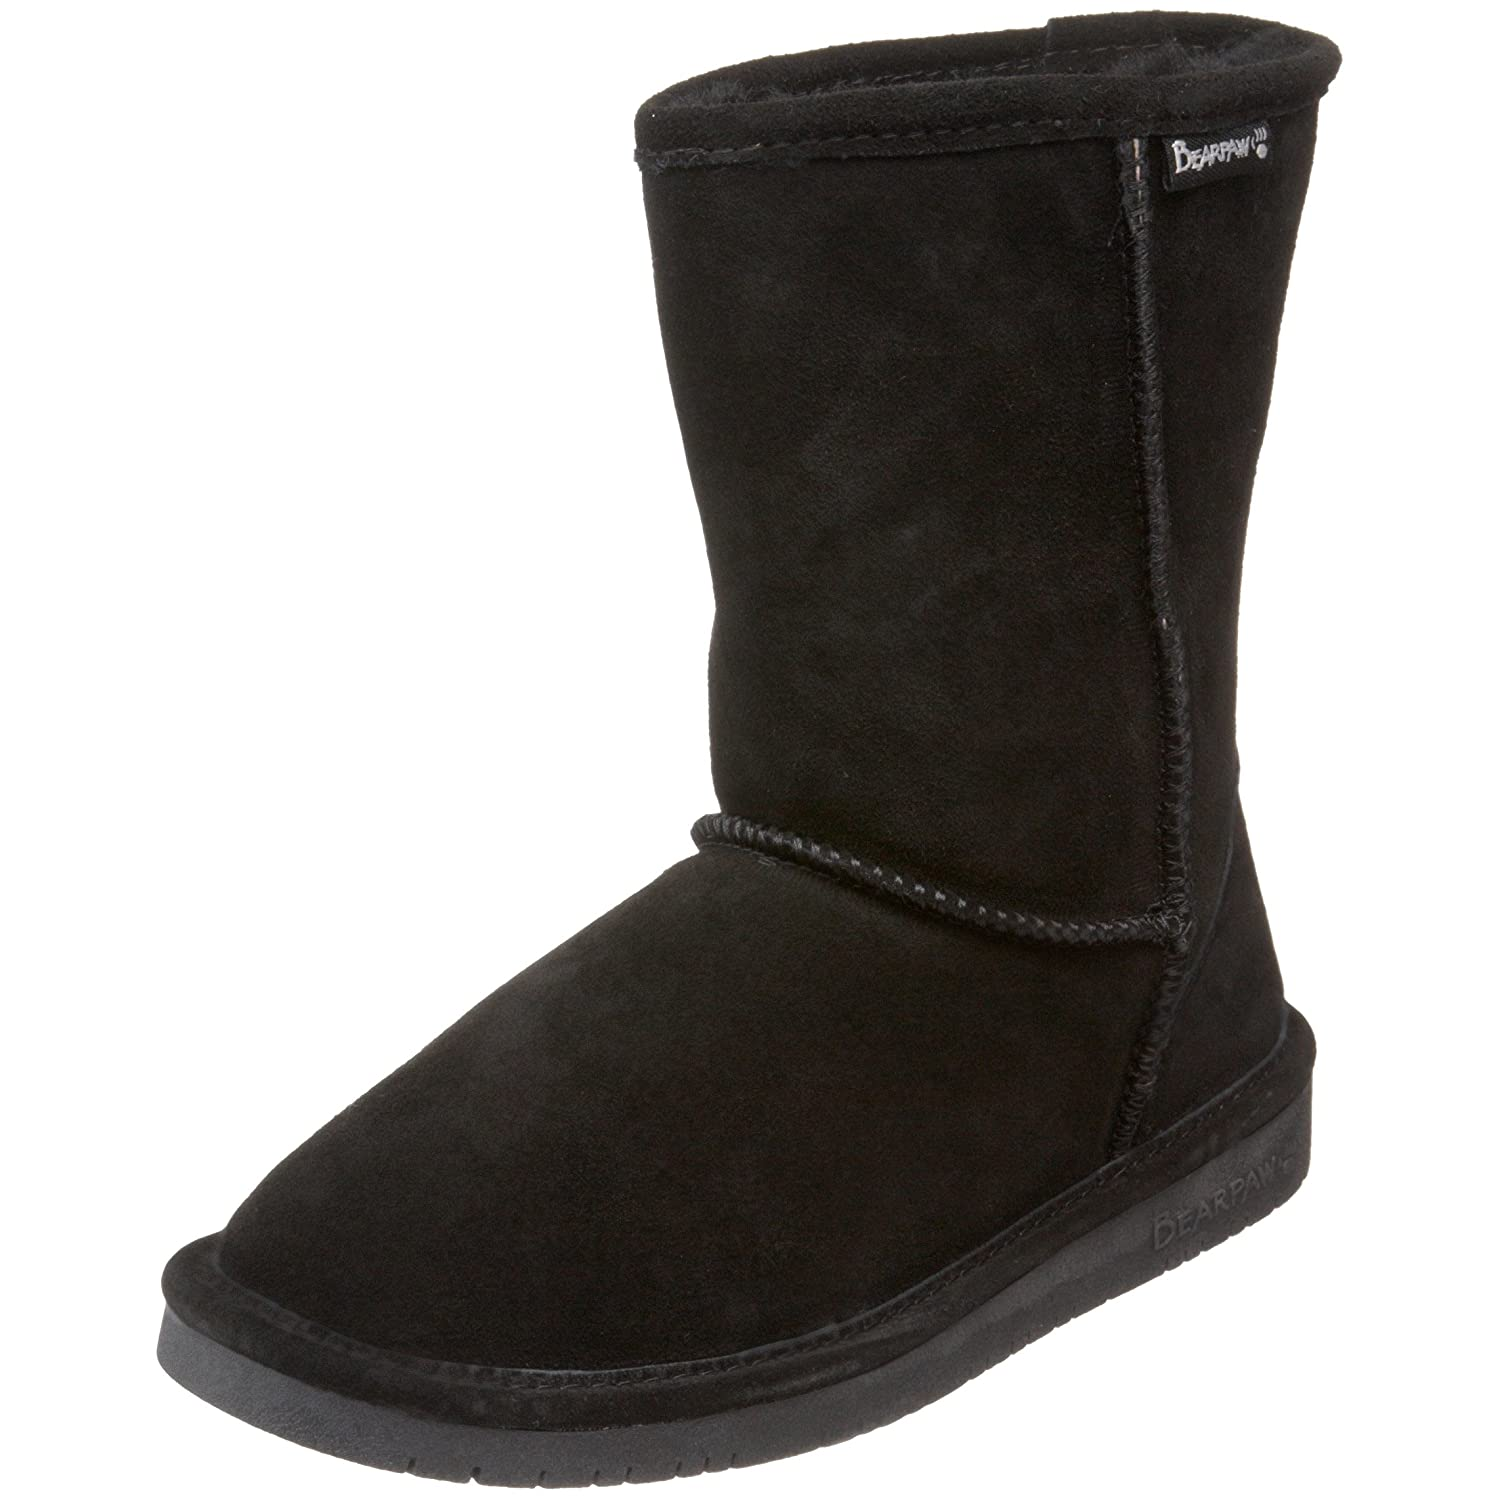 BEARPAW Women's Emma Short Snow Boot B074G2XSMM 7.5 B(M) US|Black